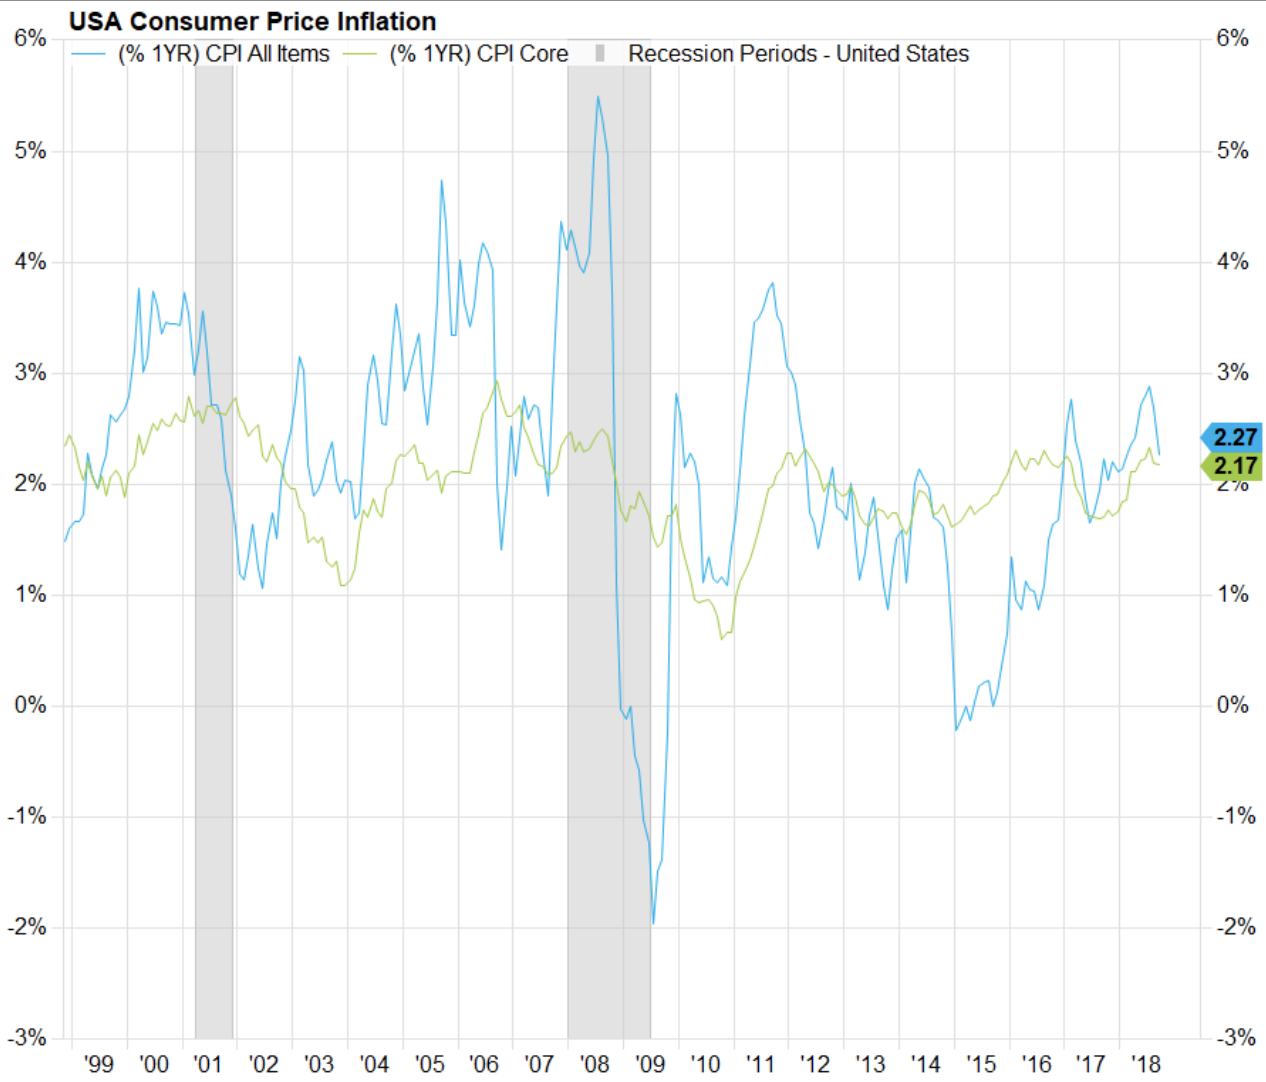 USA Consumer Price Inflation